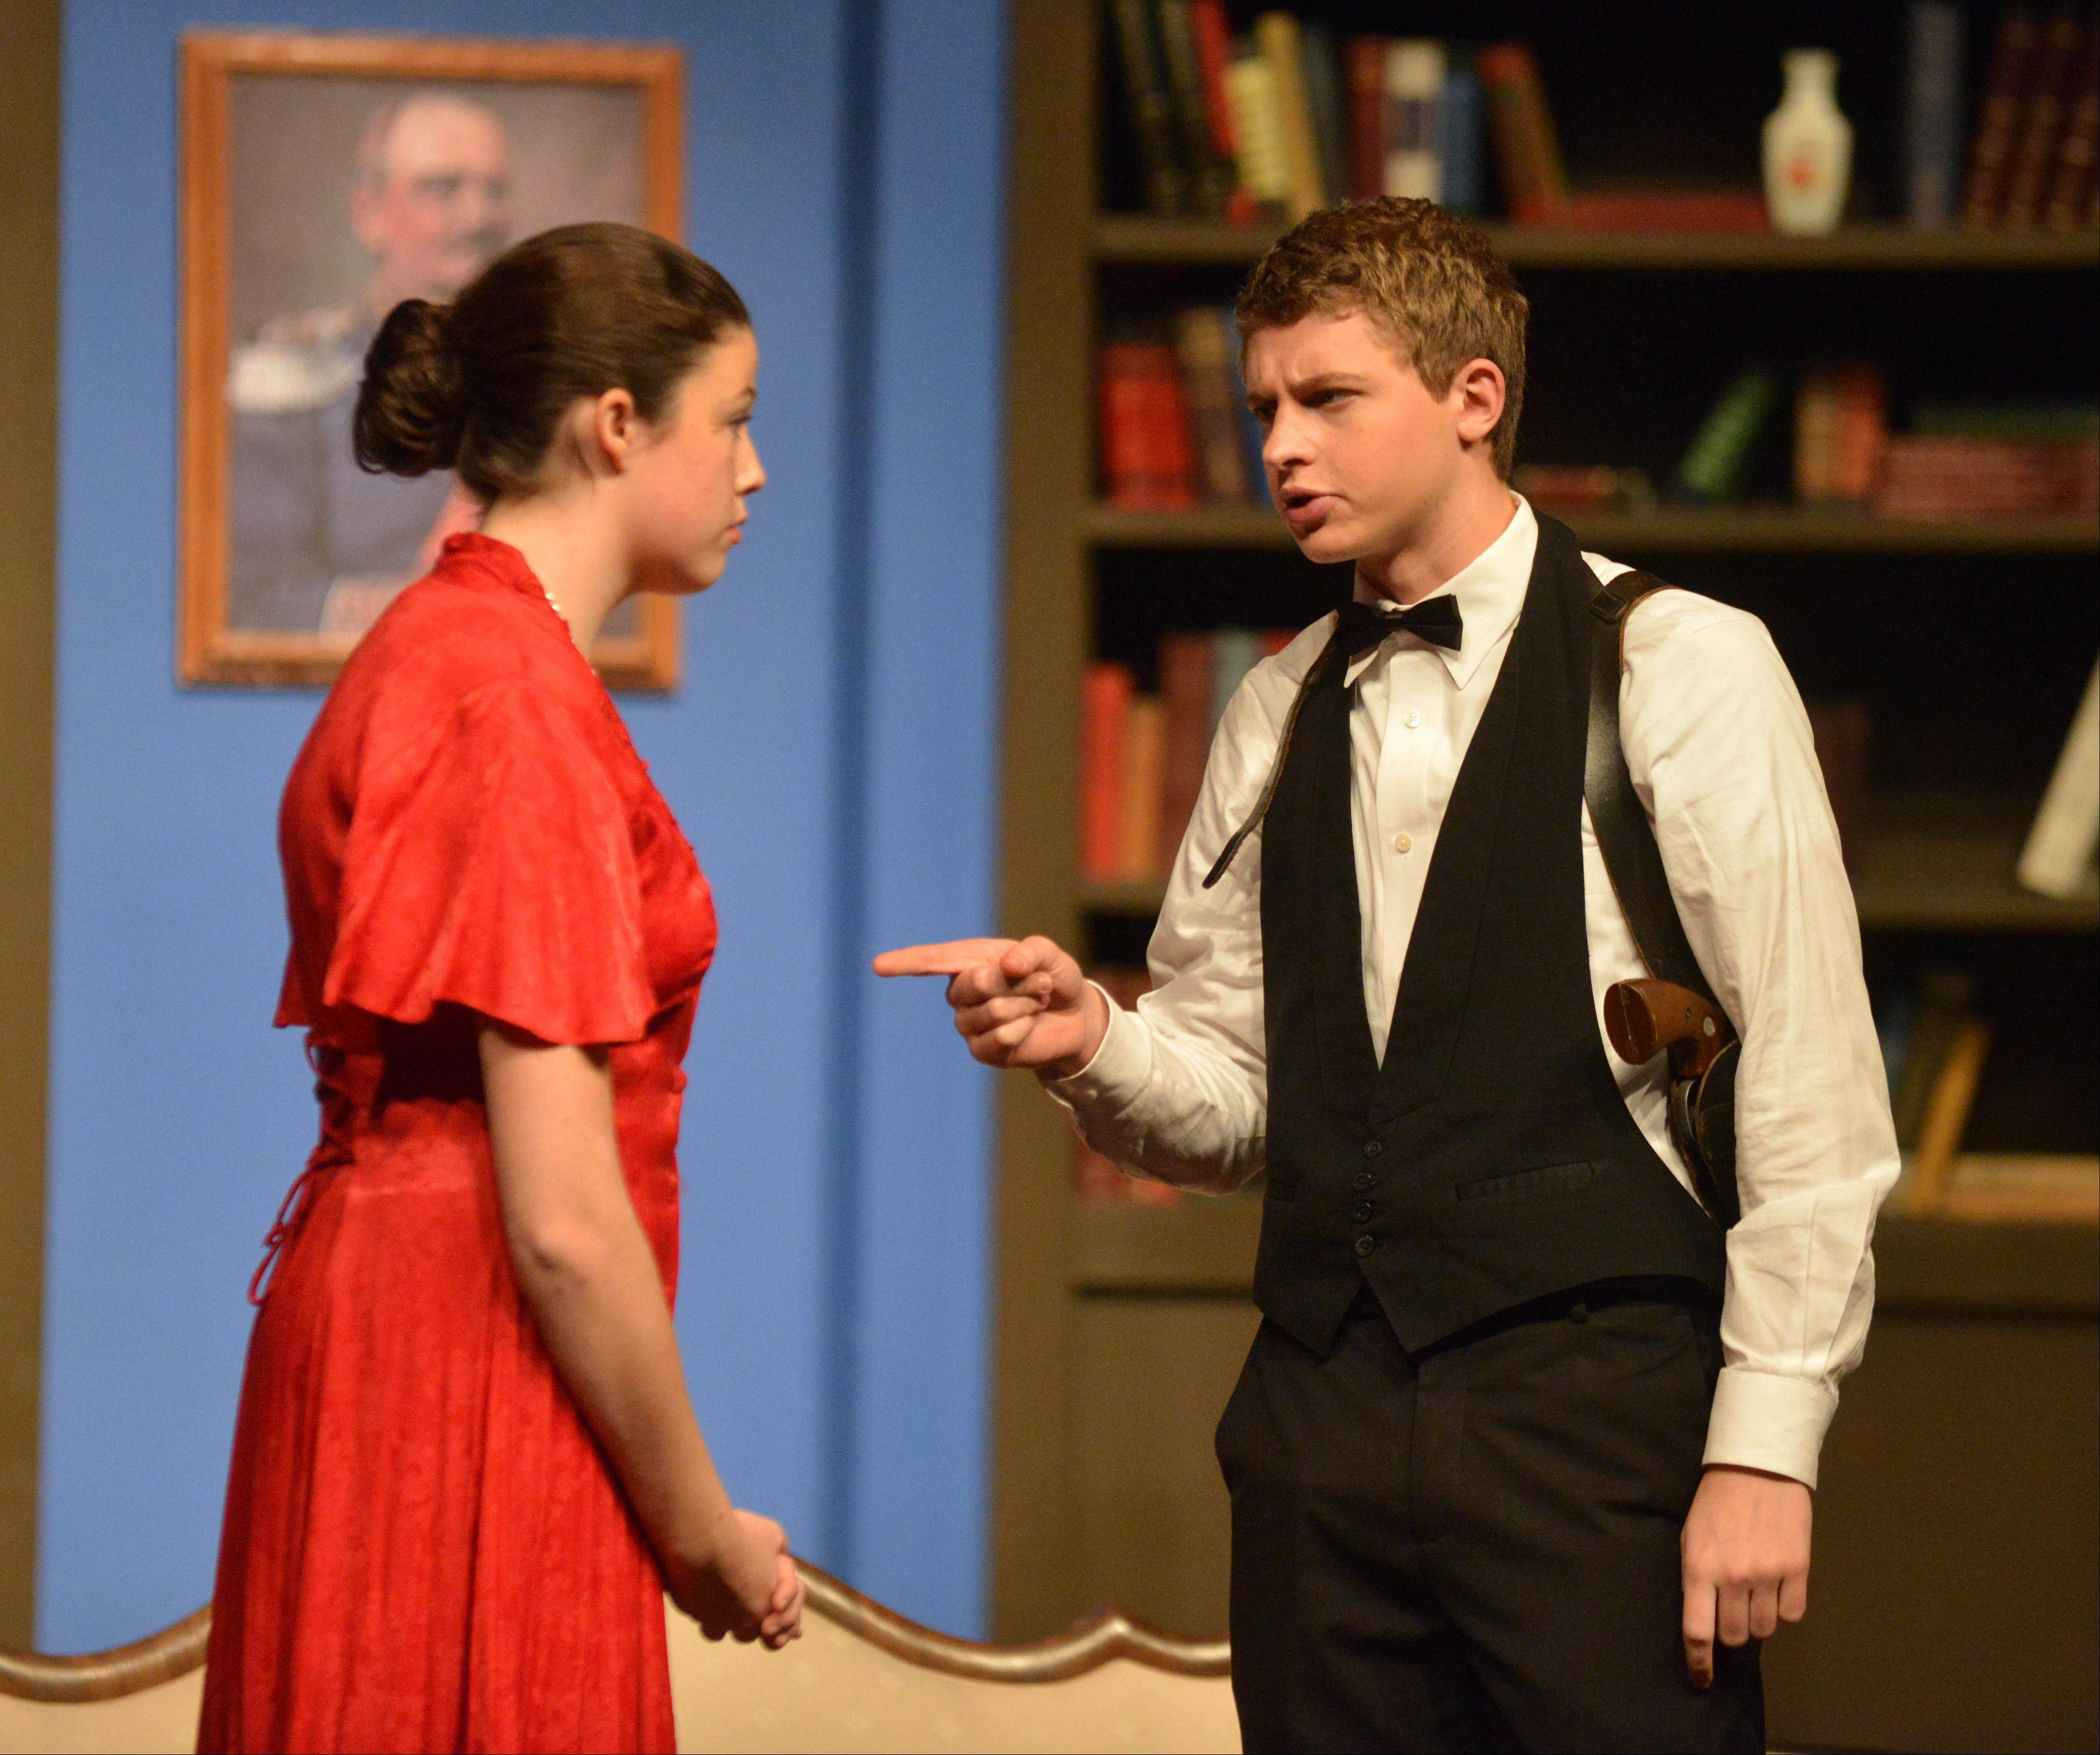 Anna Rose Redgate and Danny Peterson are featured in this weekend's theater production at Naperville Central.